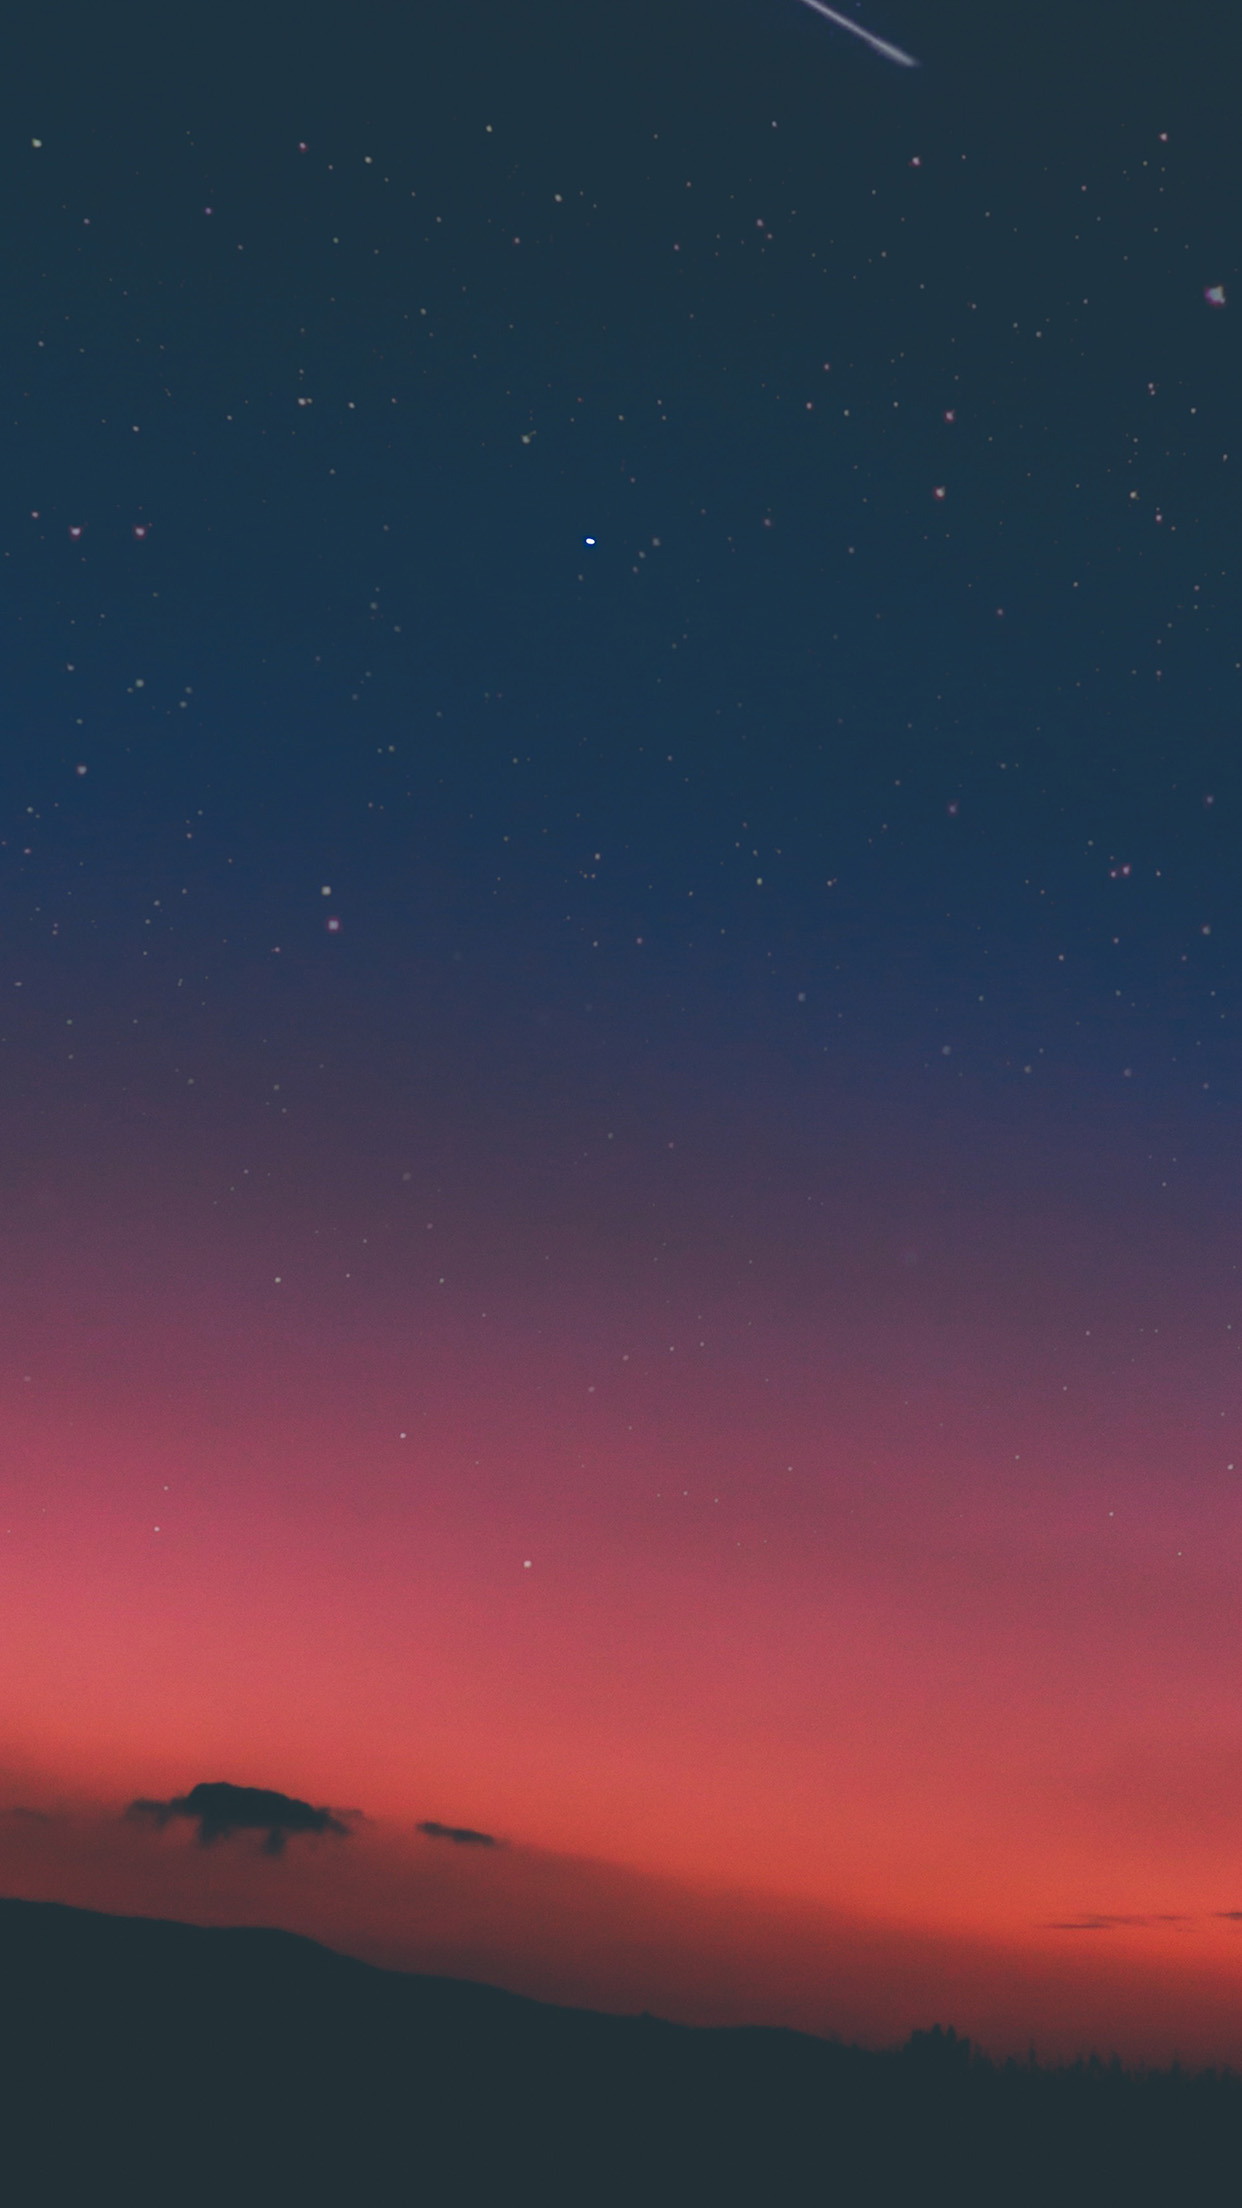 For iphone x iphonexpapers for Best home wallpaper iphone